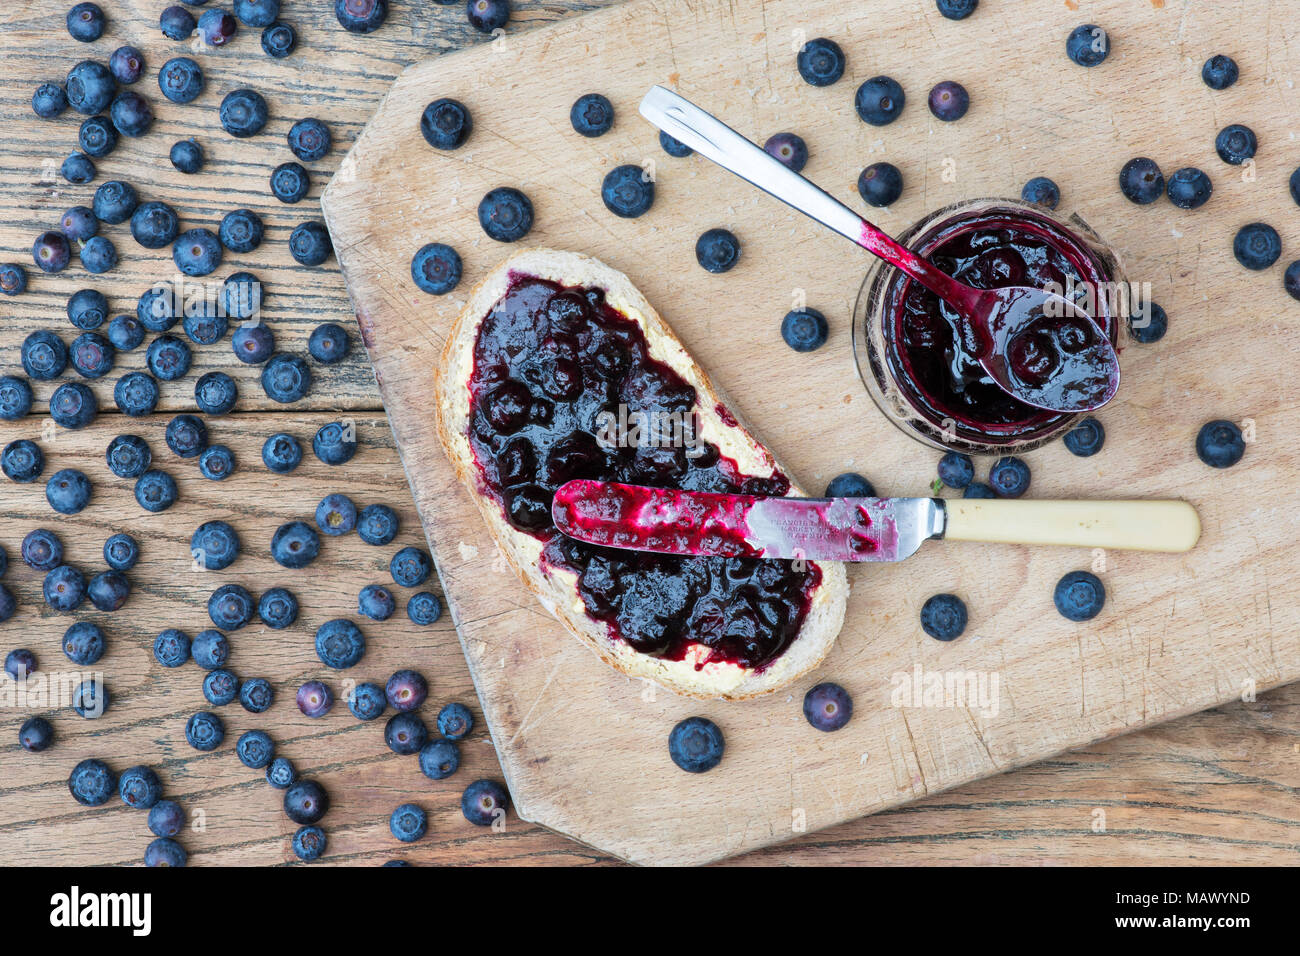 Homemade Blueberry jam and bread on a wood background Stock Photo